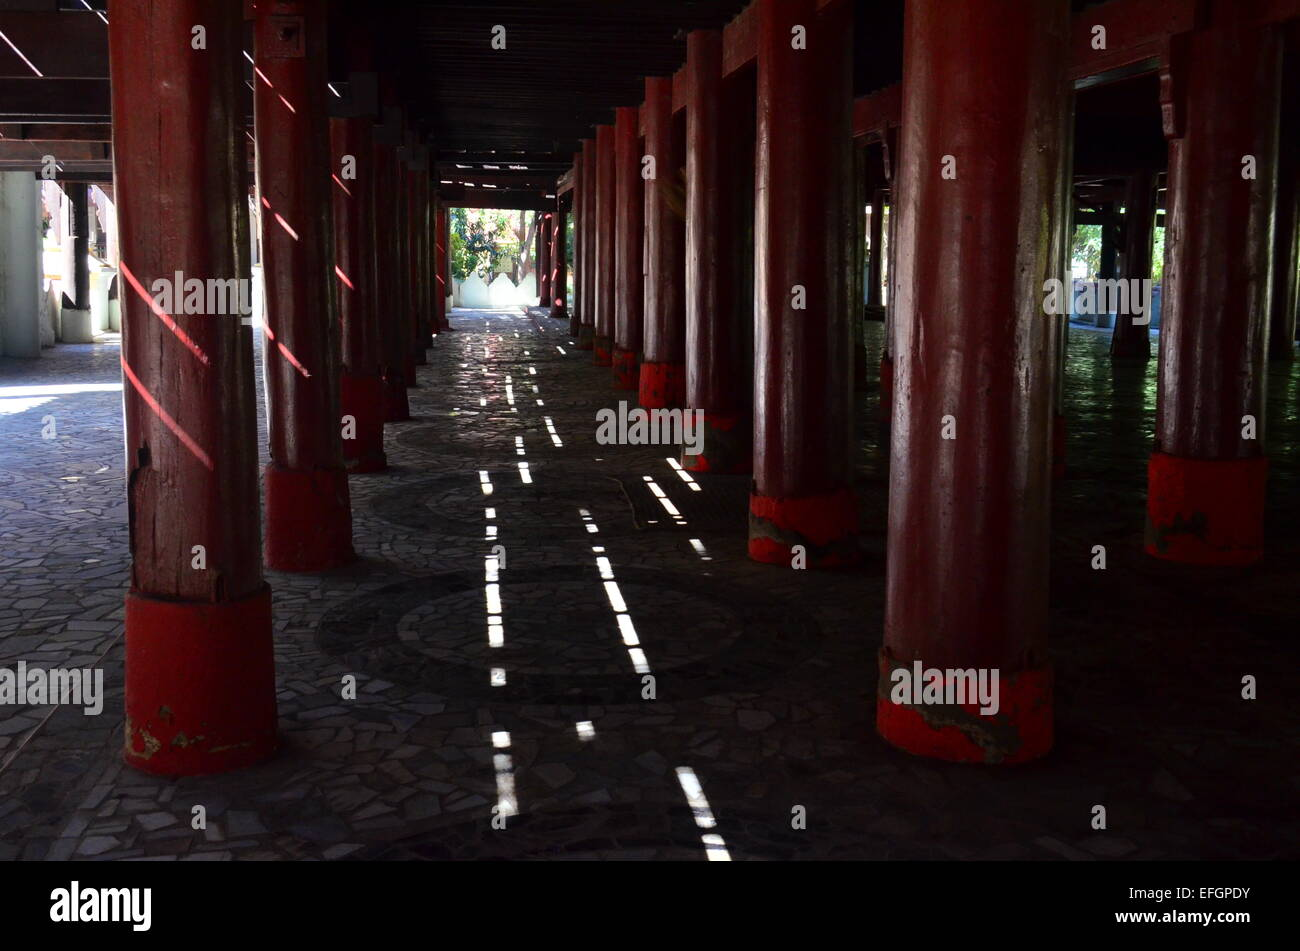 Shadows in monastery showing the correct path to the light. - Stock Image